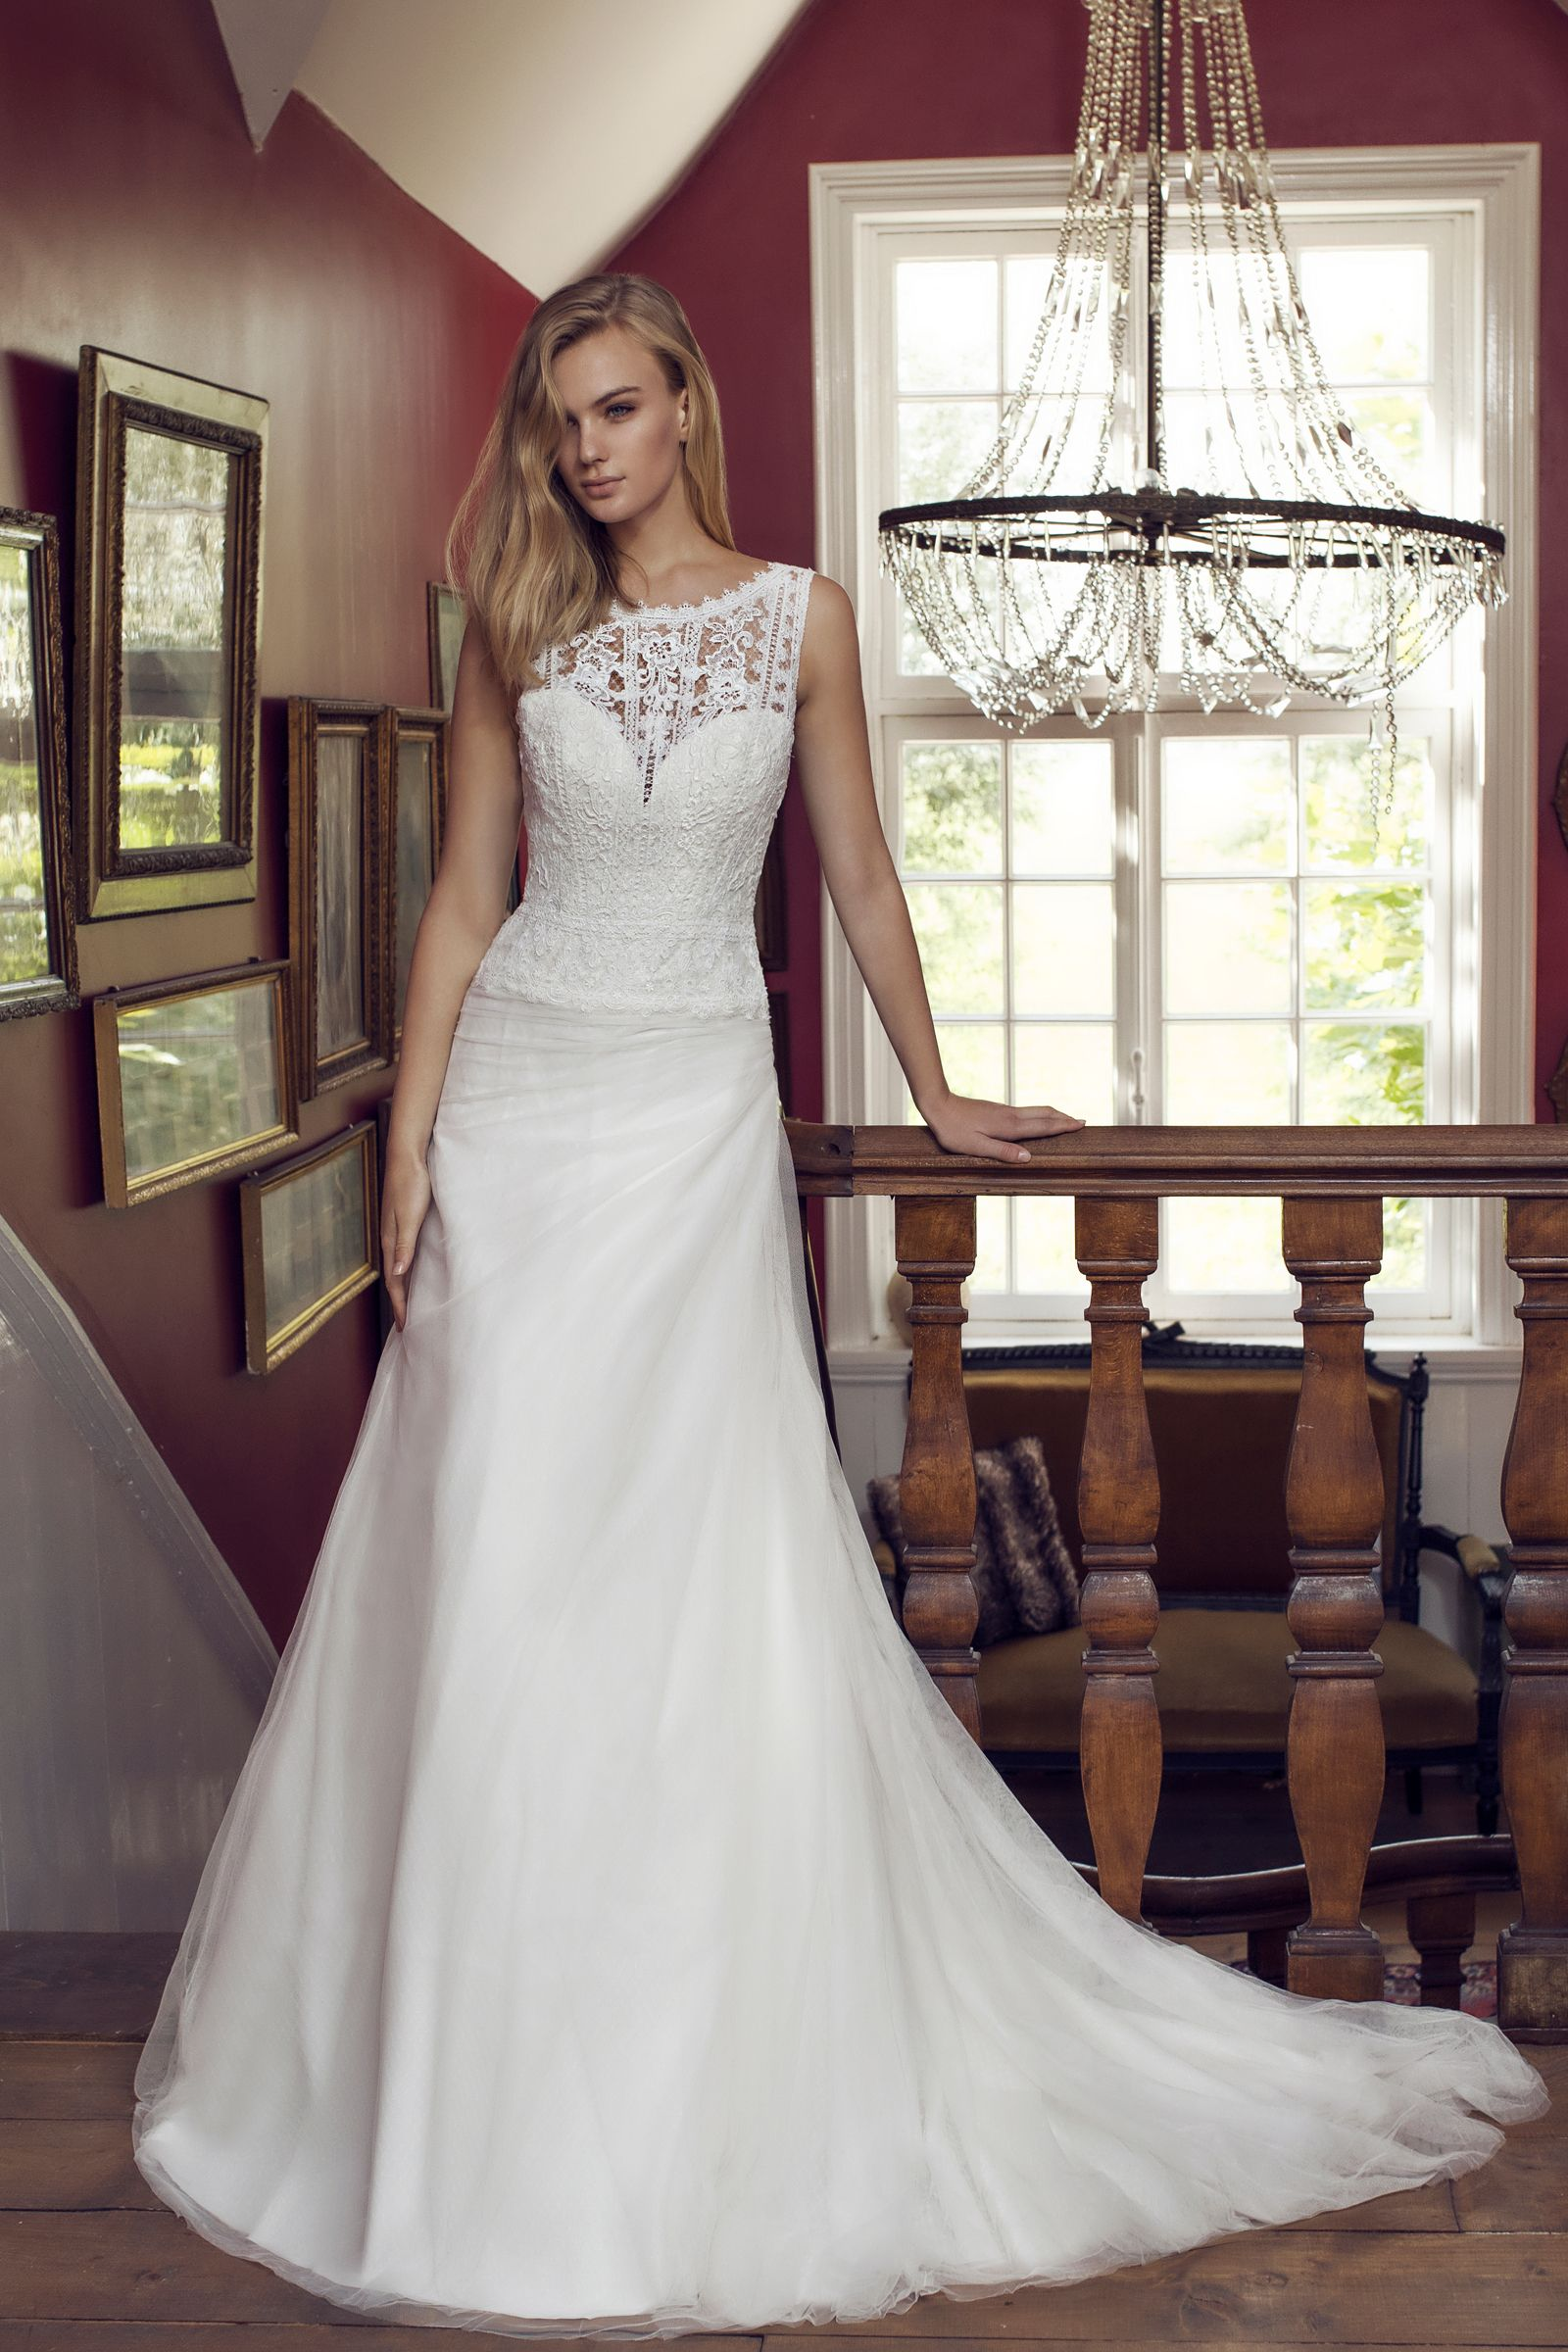 706012e5faef A combination of Tulle and Organza in this  Romantic  WeddingDress  Daphne.  The tulle top has an  IllusionNeckline made of beautiful  Lace.